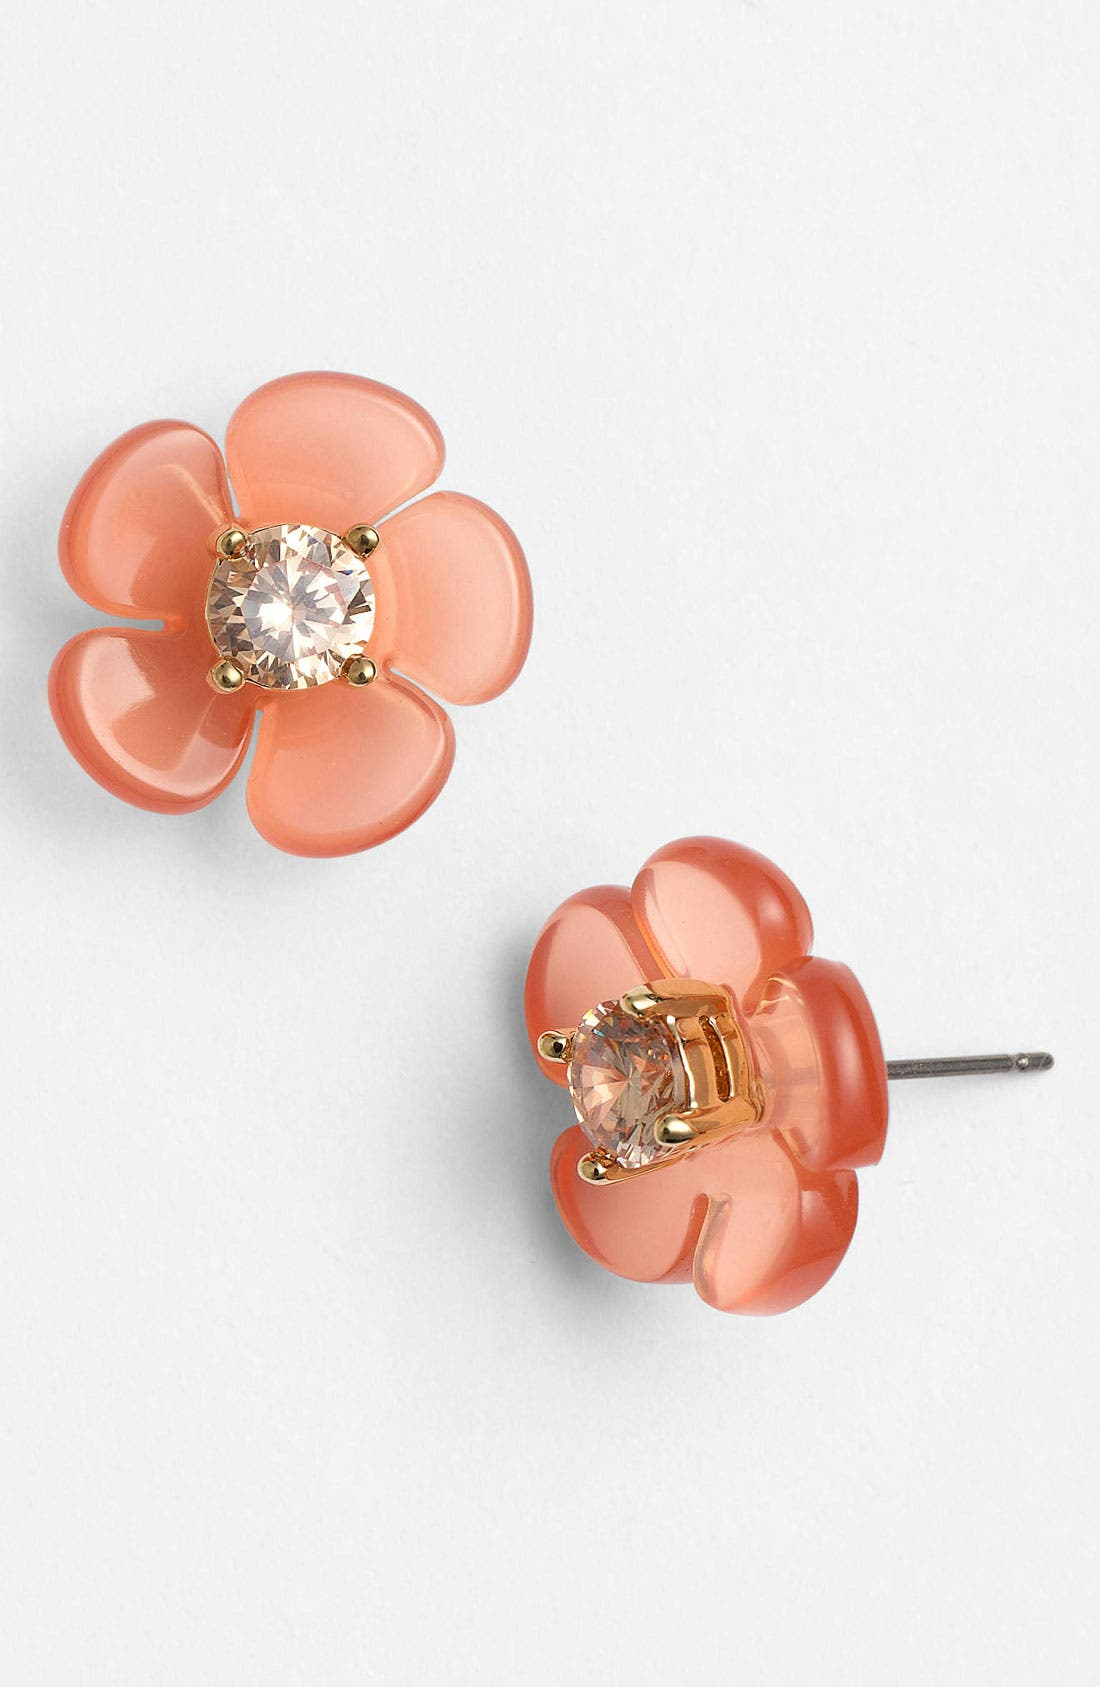 Alternate Image 1 Selected - Tory Burch 'Flora' Stud Earrings